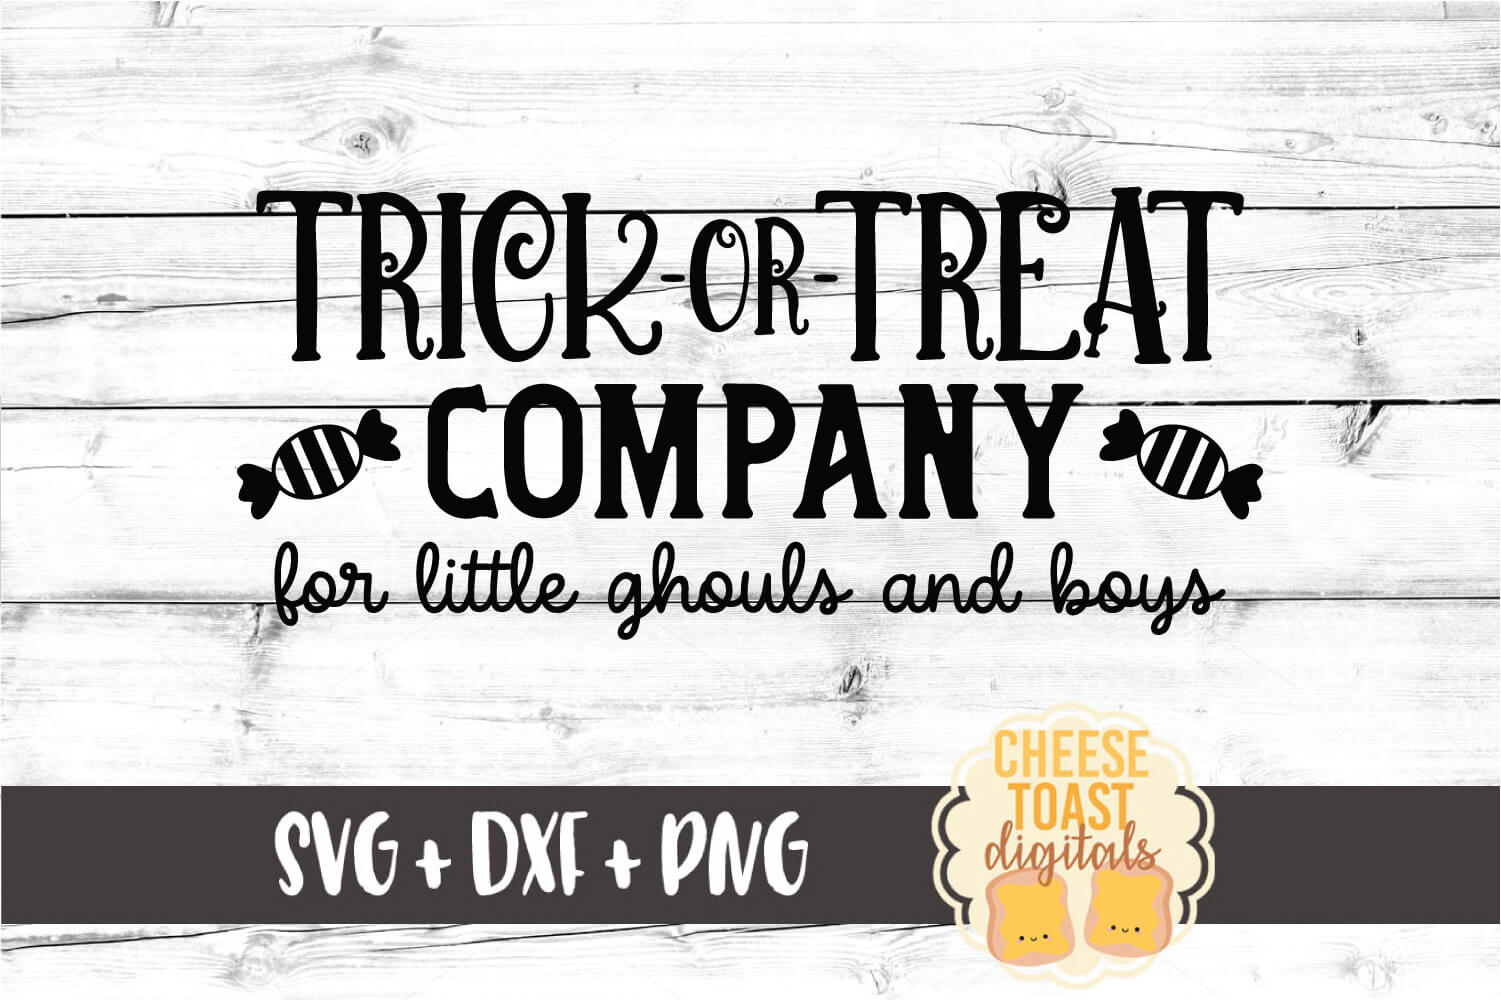 Trick Or Treat Company - Halloween Sign SVG PNG DXF Files example image 2